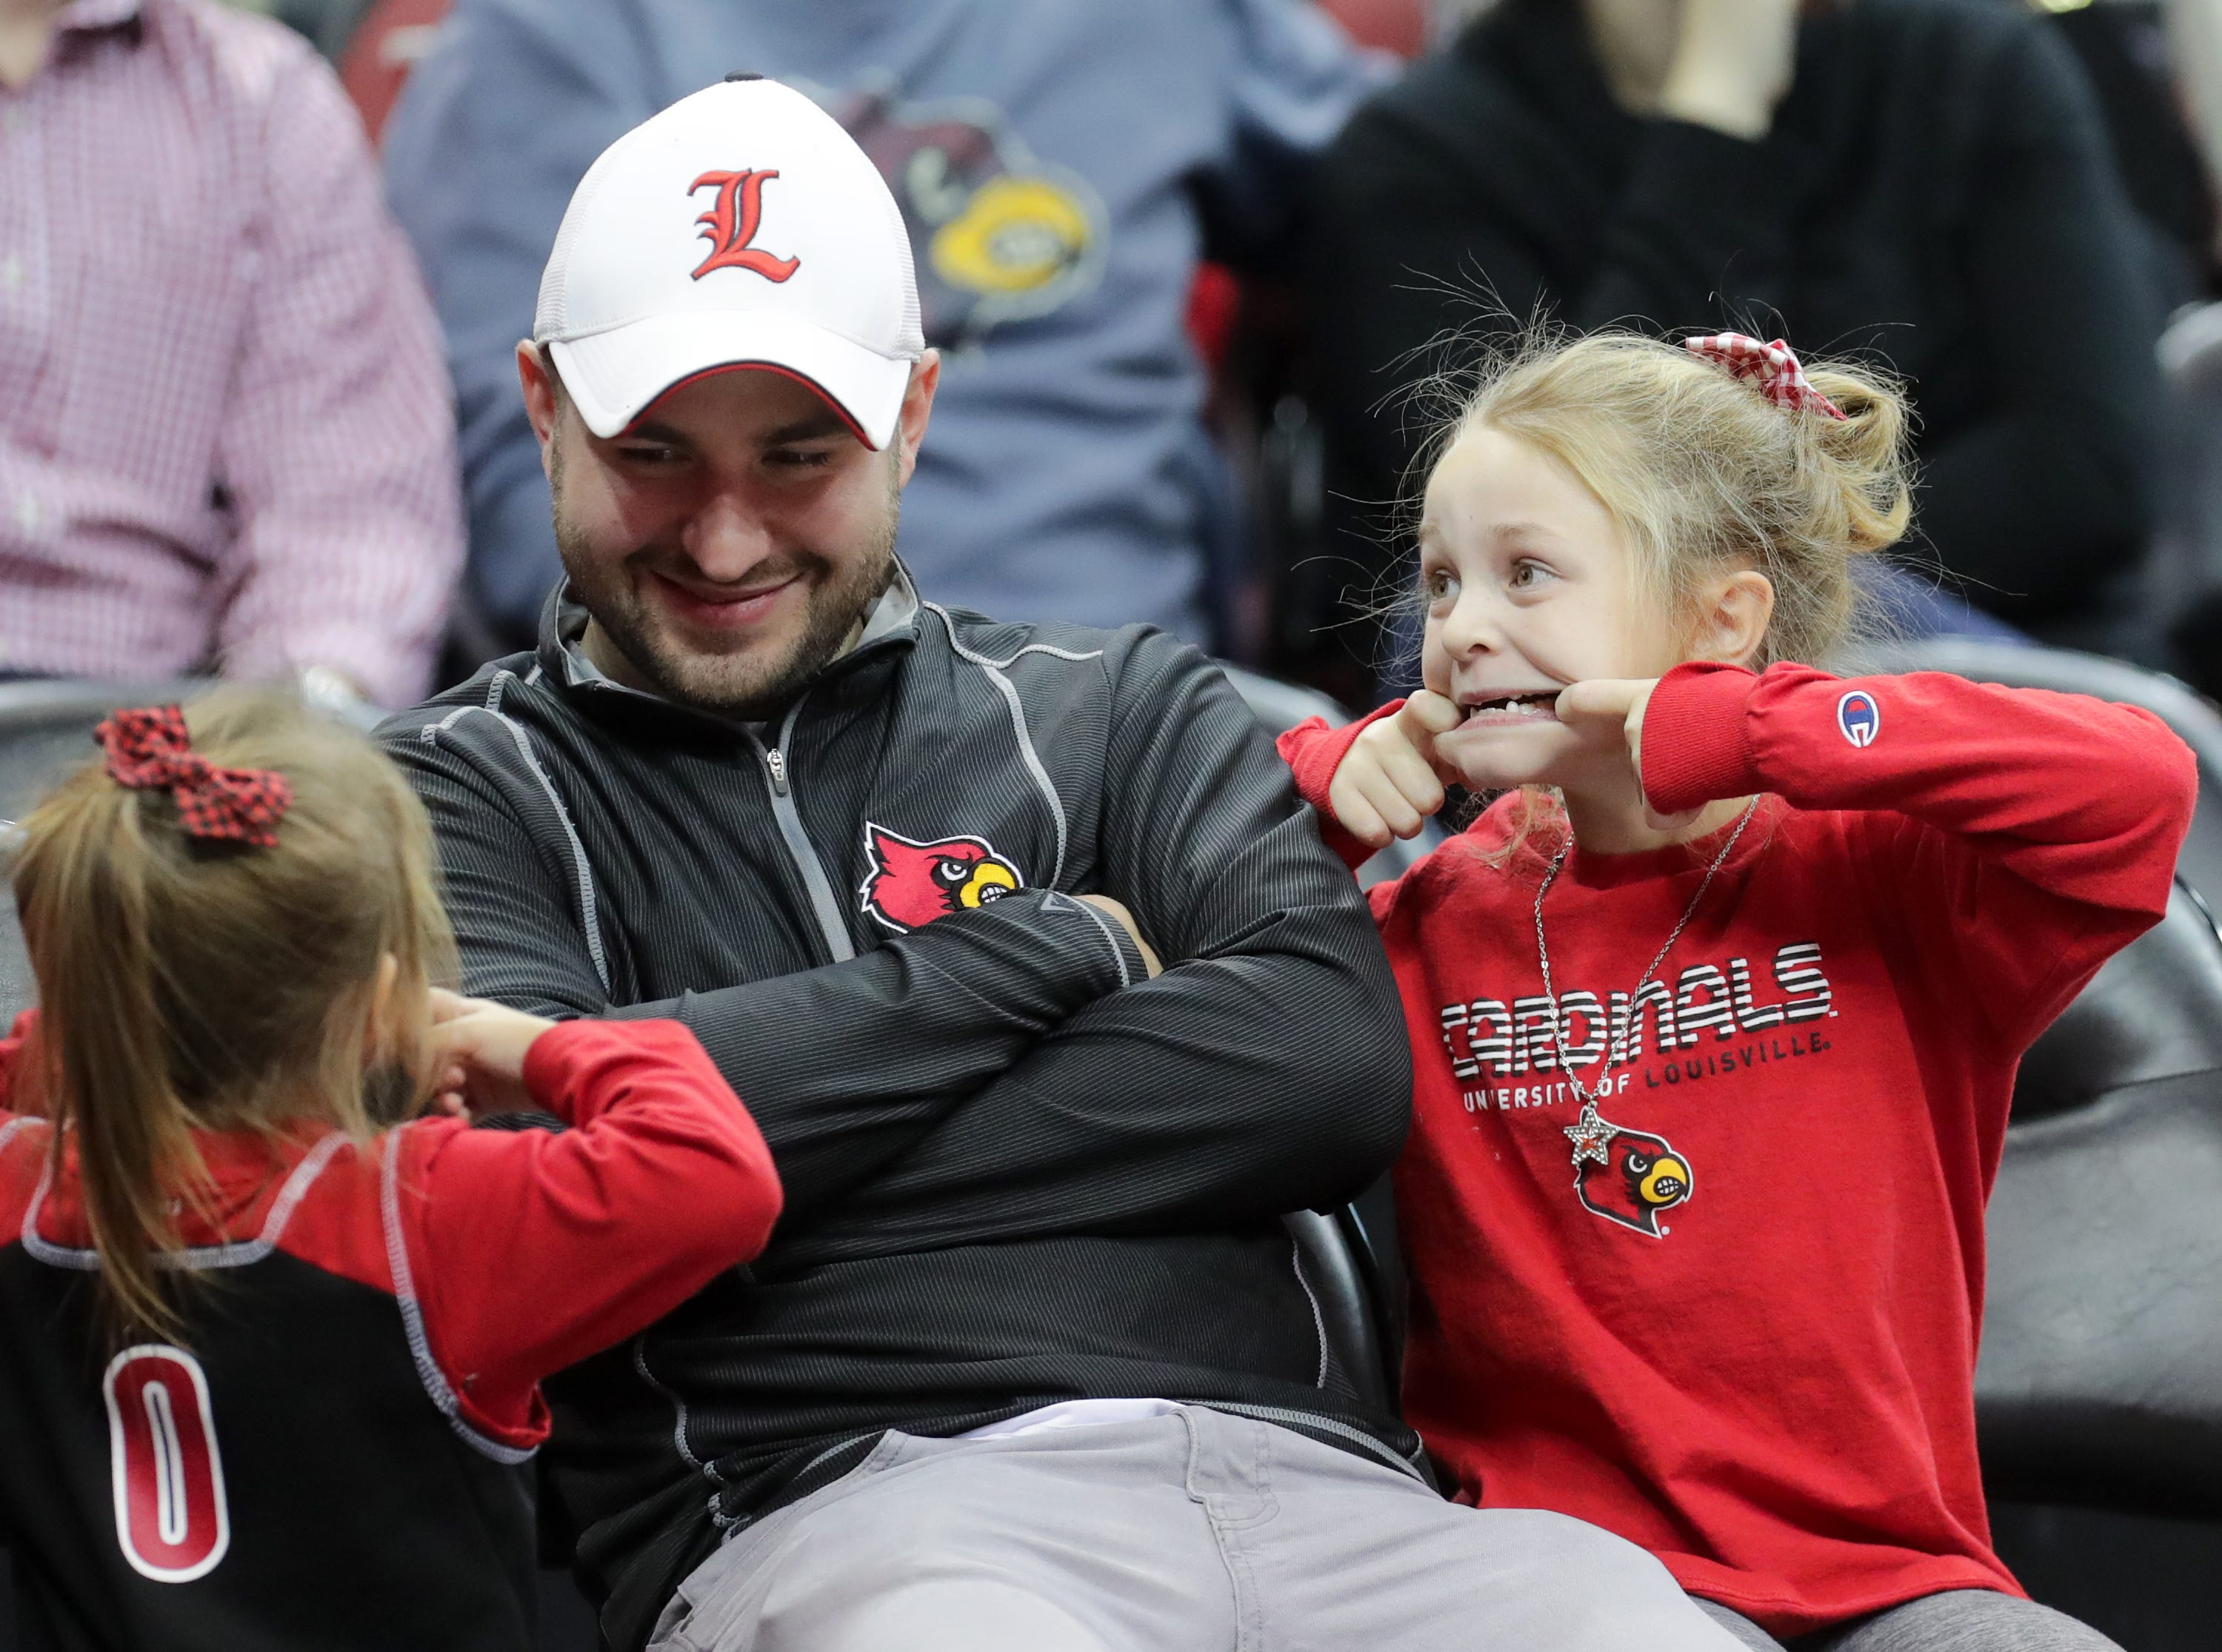 Louisville's fans have a little fun during a timeout. 